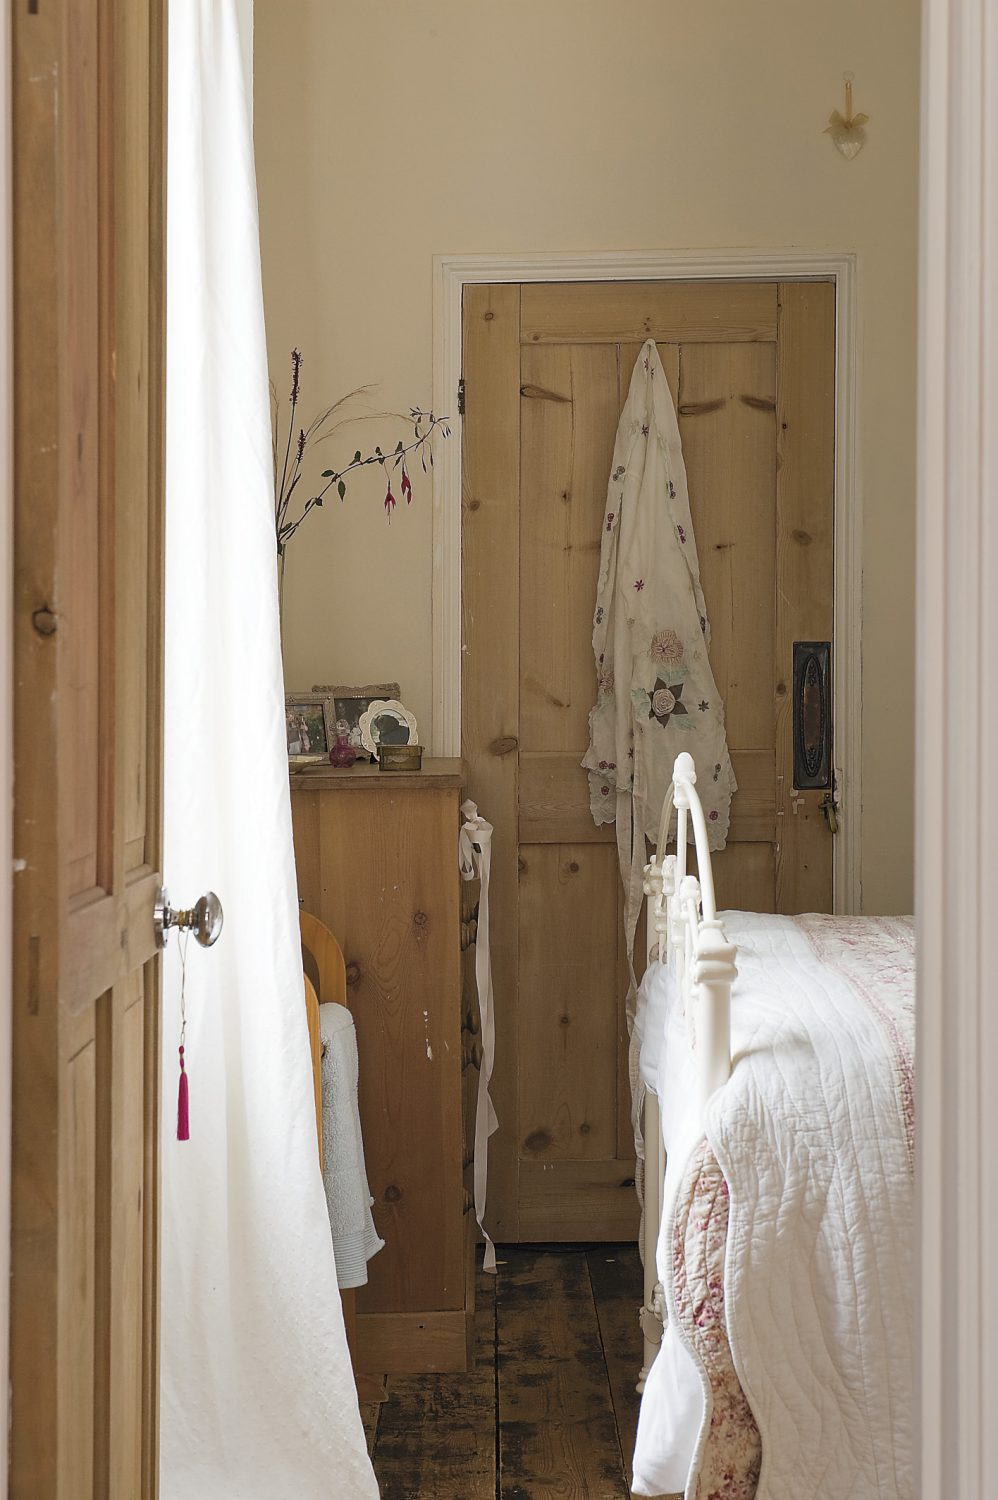 stripped pine and floral quilts in the spare bedroom continue the pretty country theme